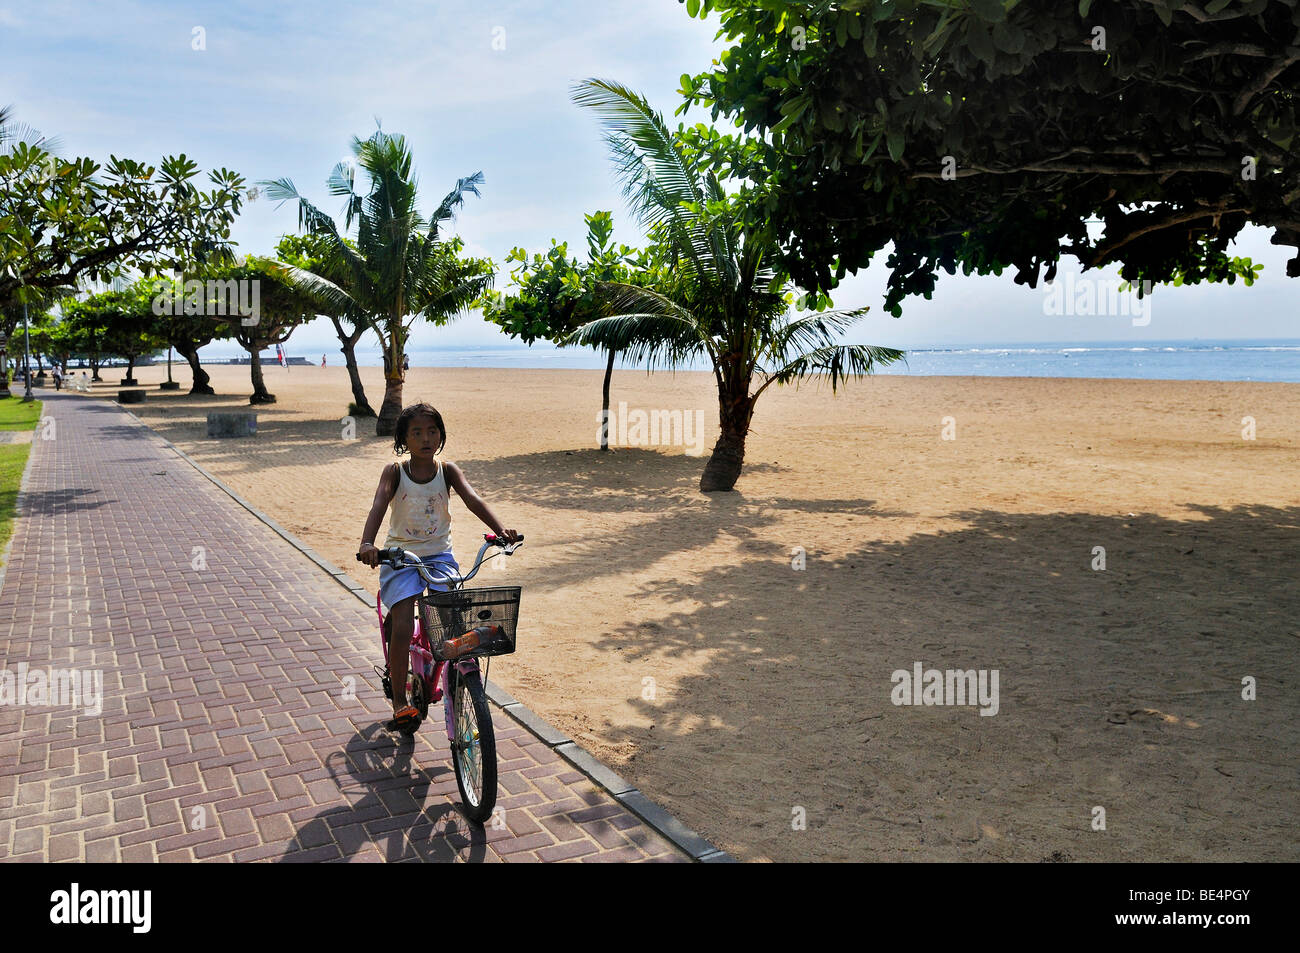 Beach with trees and bicyclist near Sanur, Denpasar, Bali, Indonesia, Southeast Asia - Stock Image